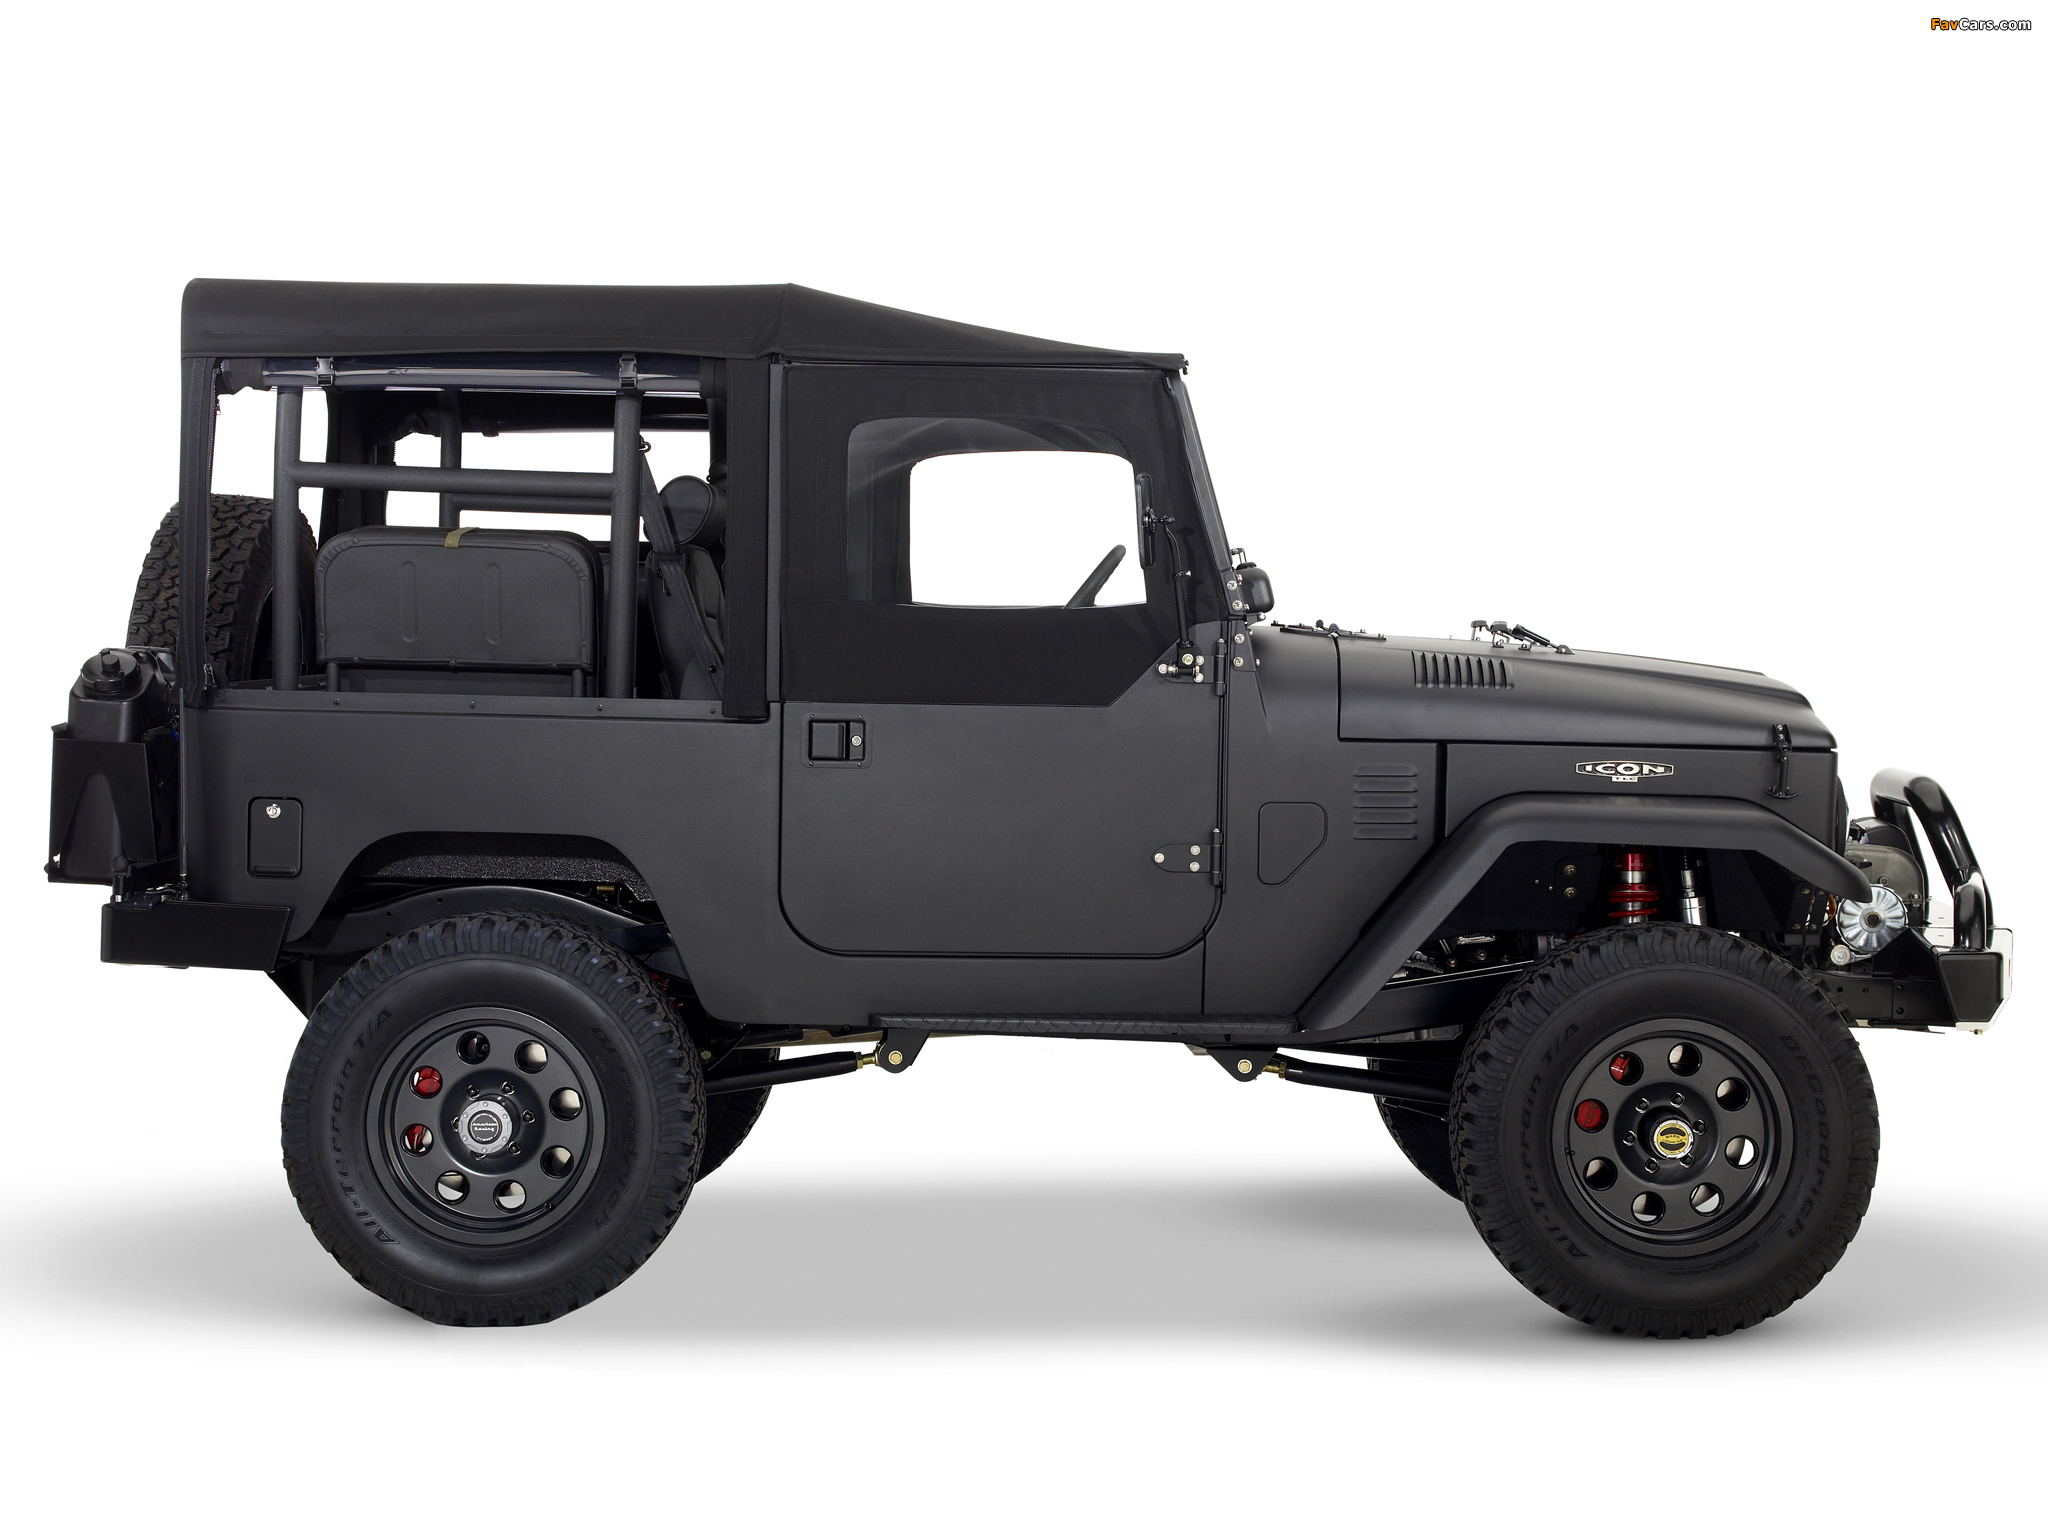 Toyota Land Cruiser Fj40 Wallpaper Wallpapers of Icon Toyota Land